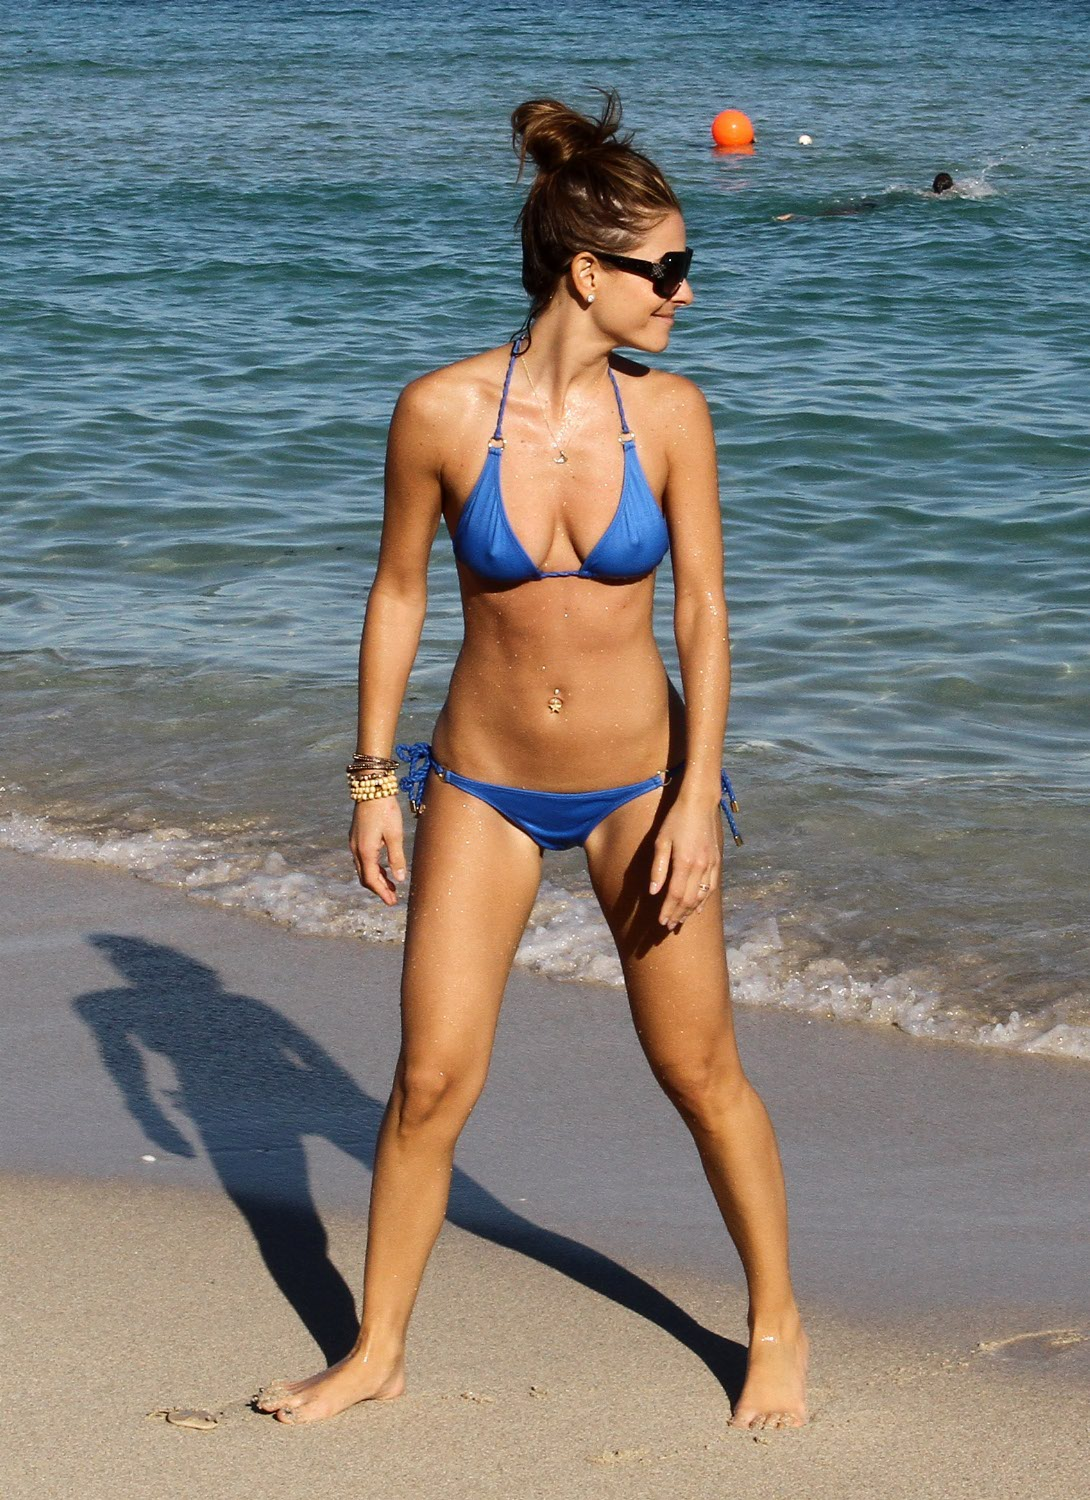 Maria Menounos has broken ribs. Pierced clit hopefully fine.